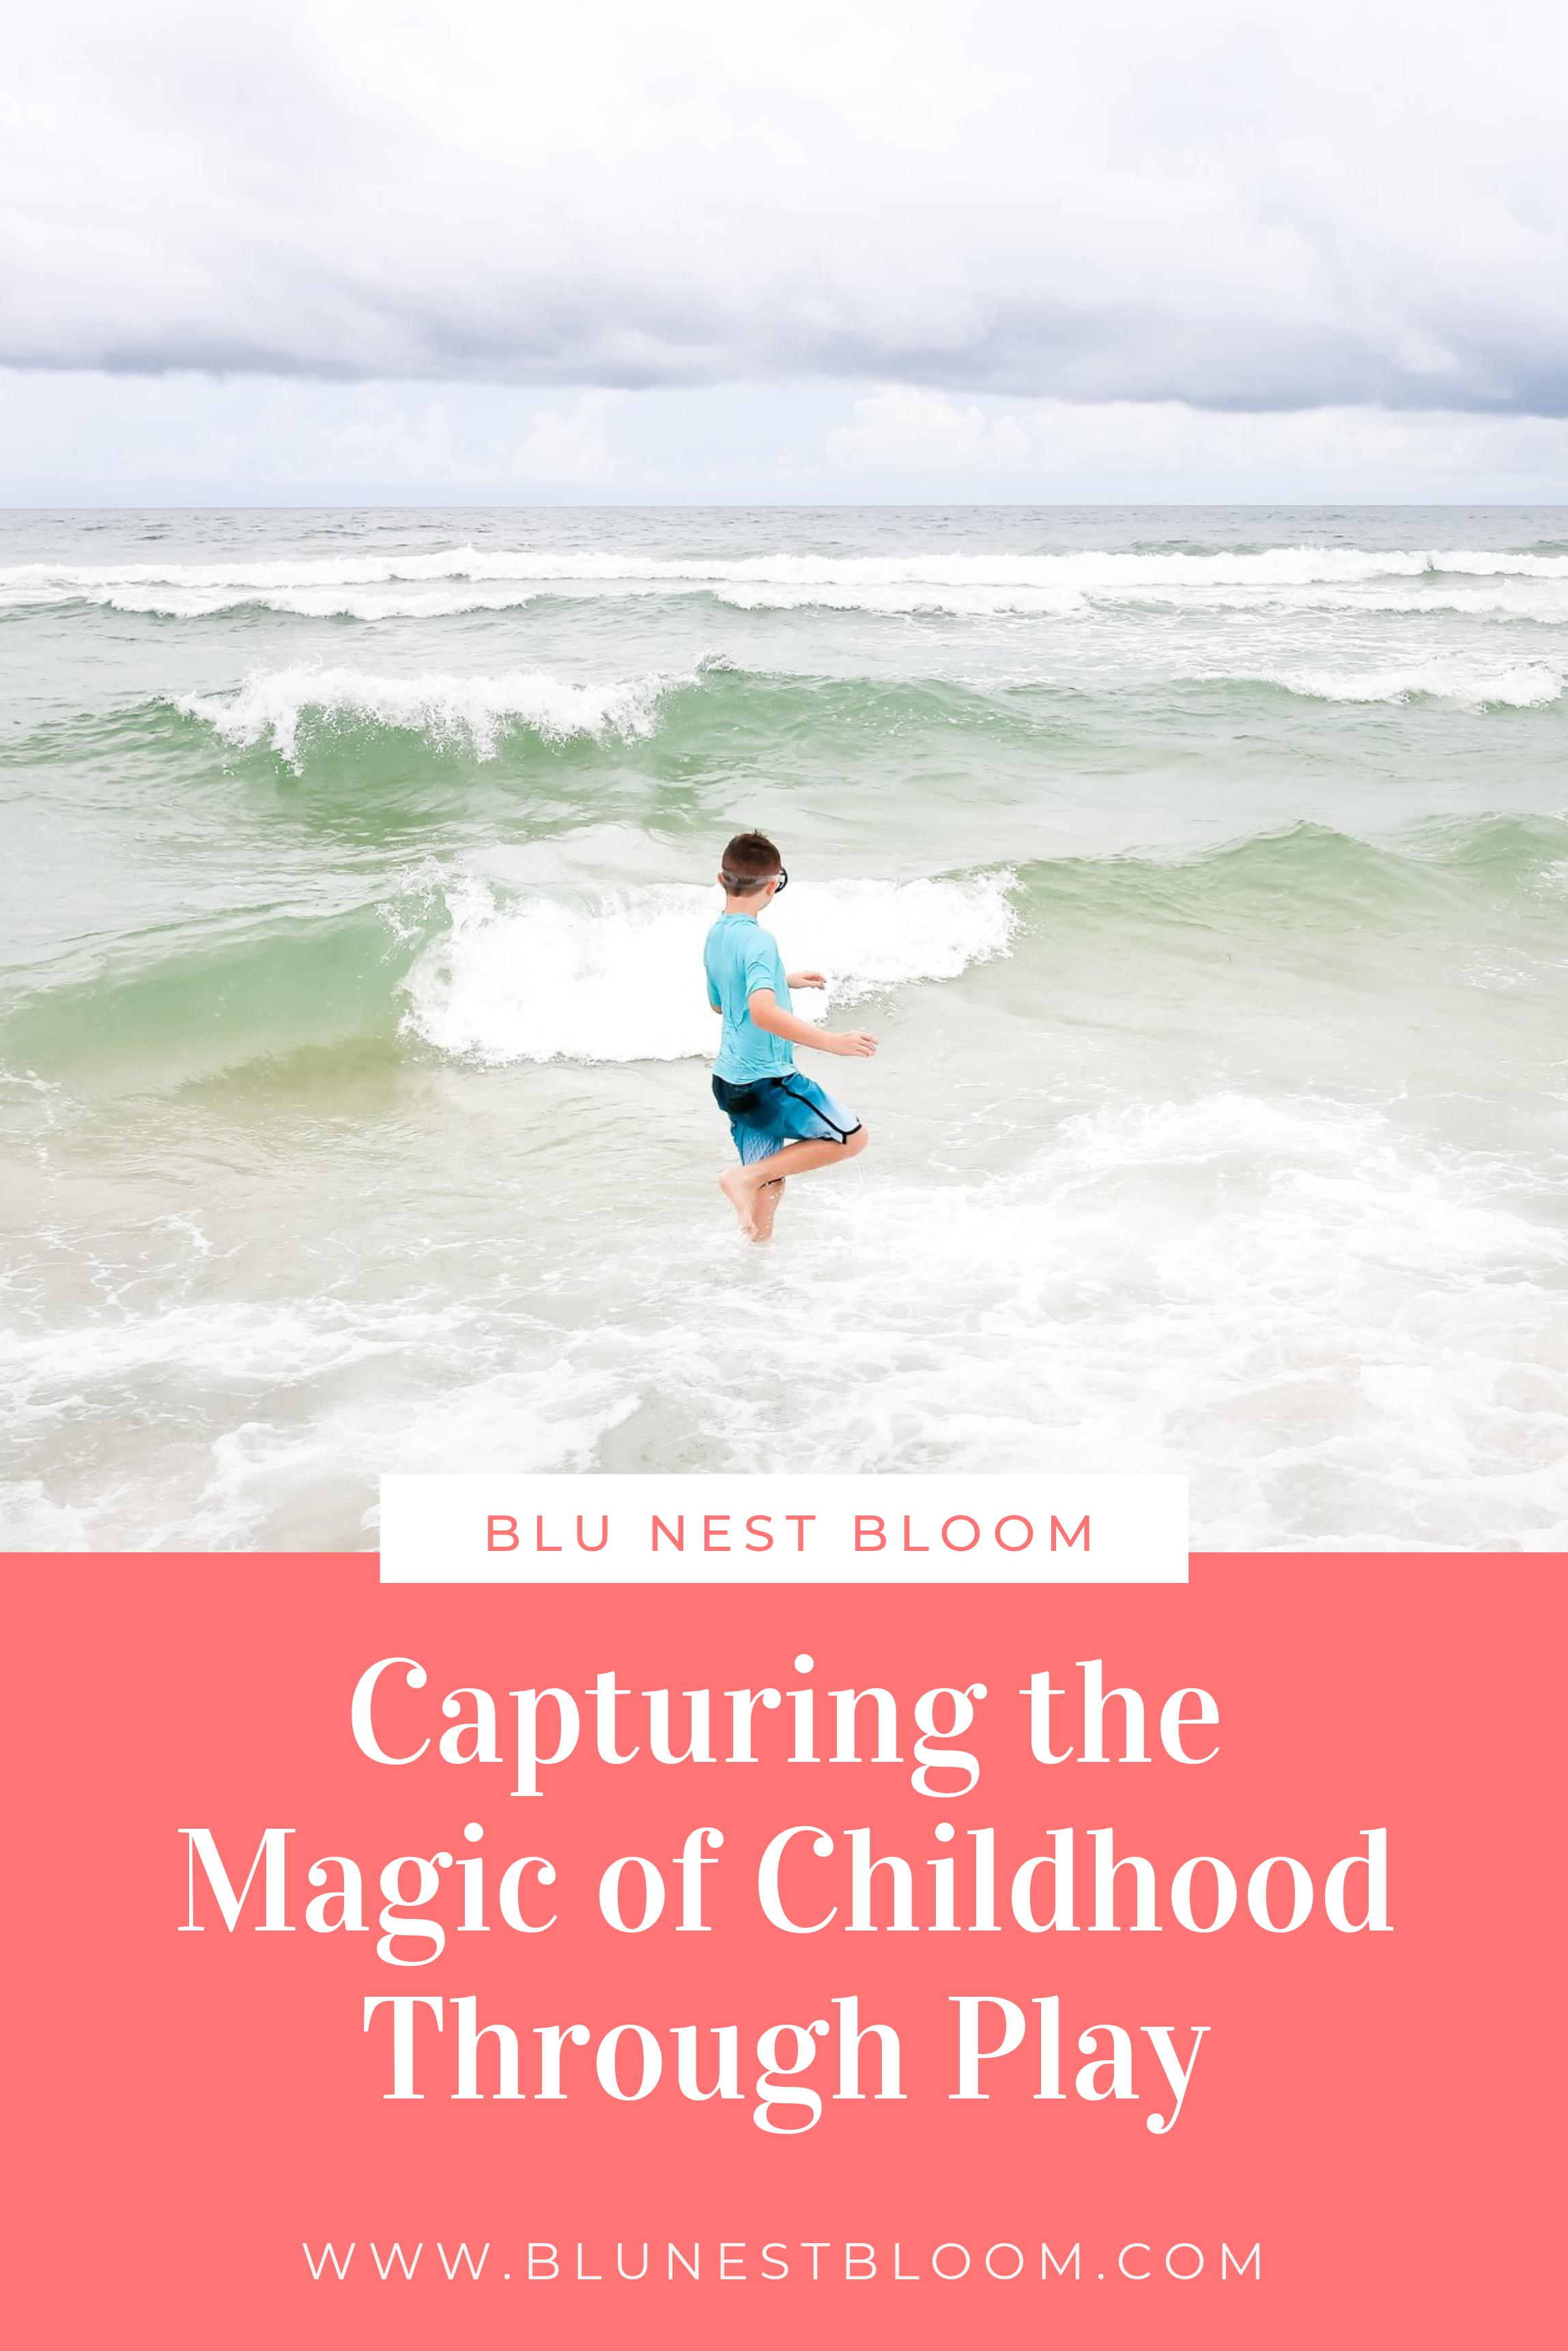 Capturing the Magic of Childhood Through Play